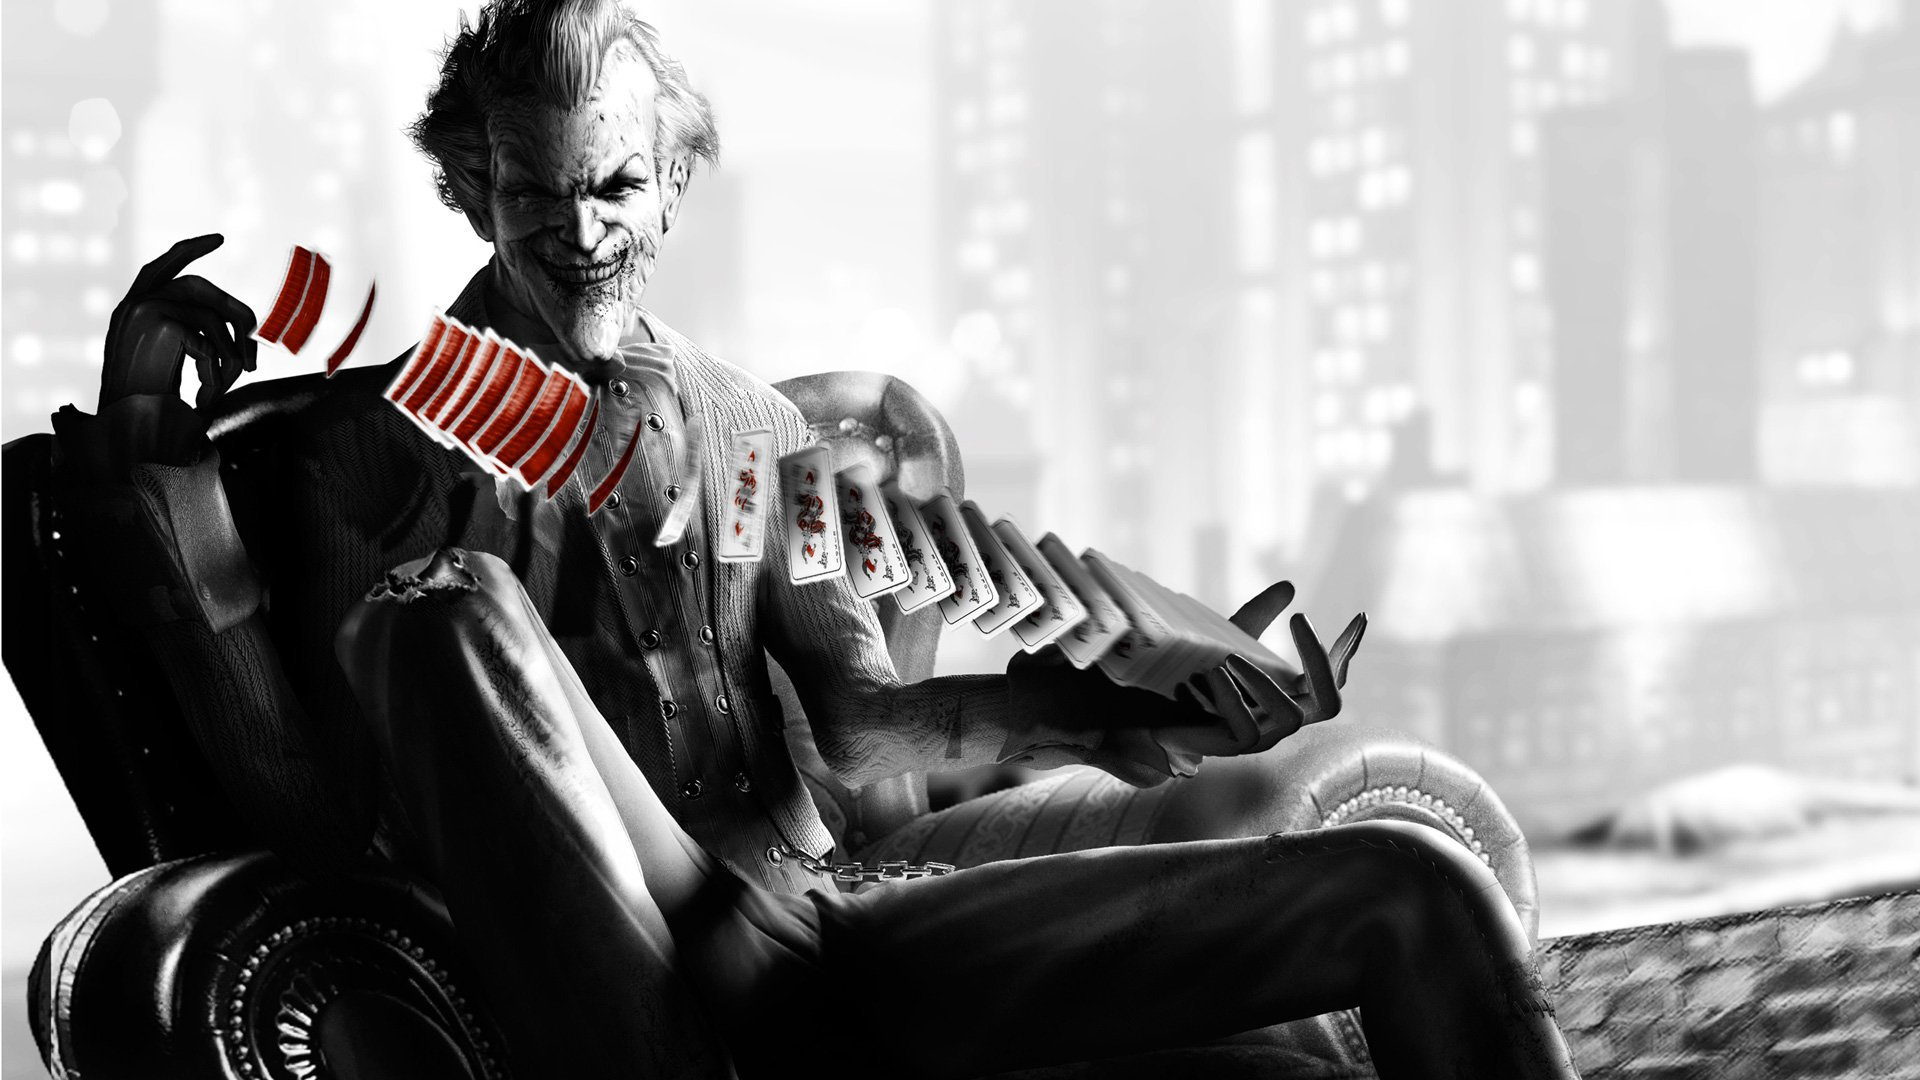 Batman Arkham City Joker Wallpaper 19201080 23054 HD Wallpaper Res 1920x1080